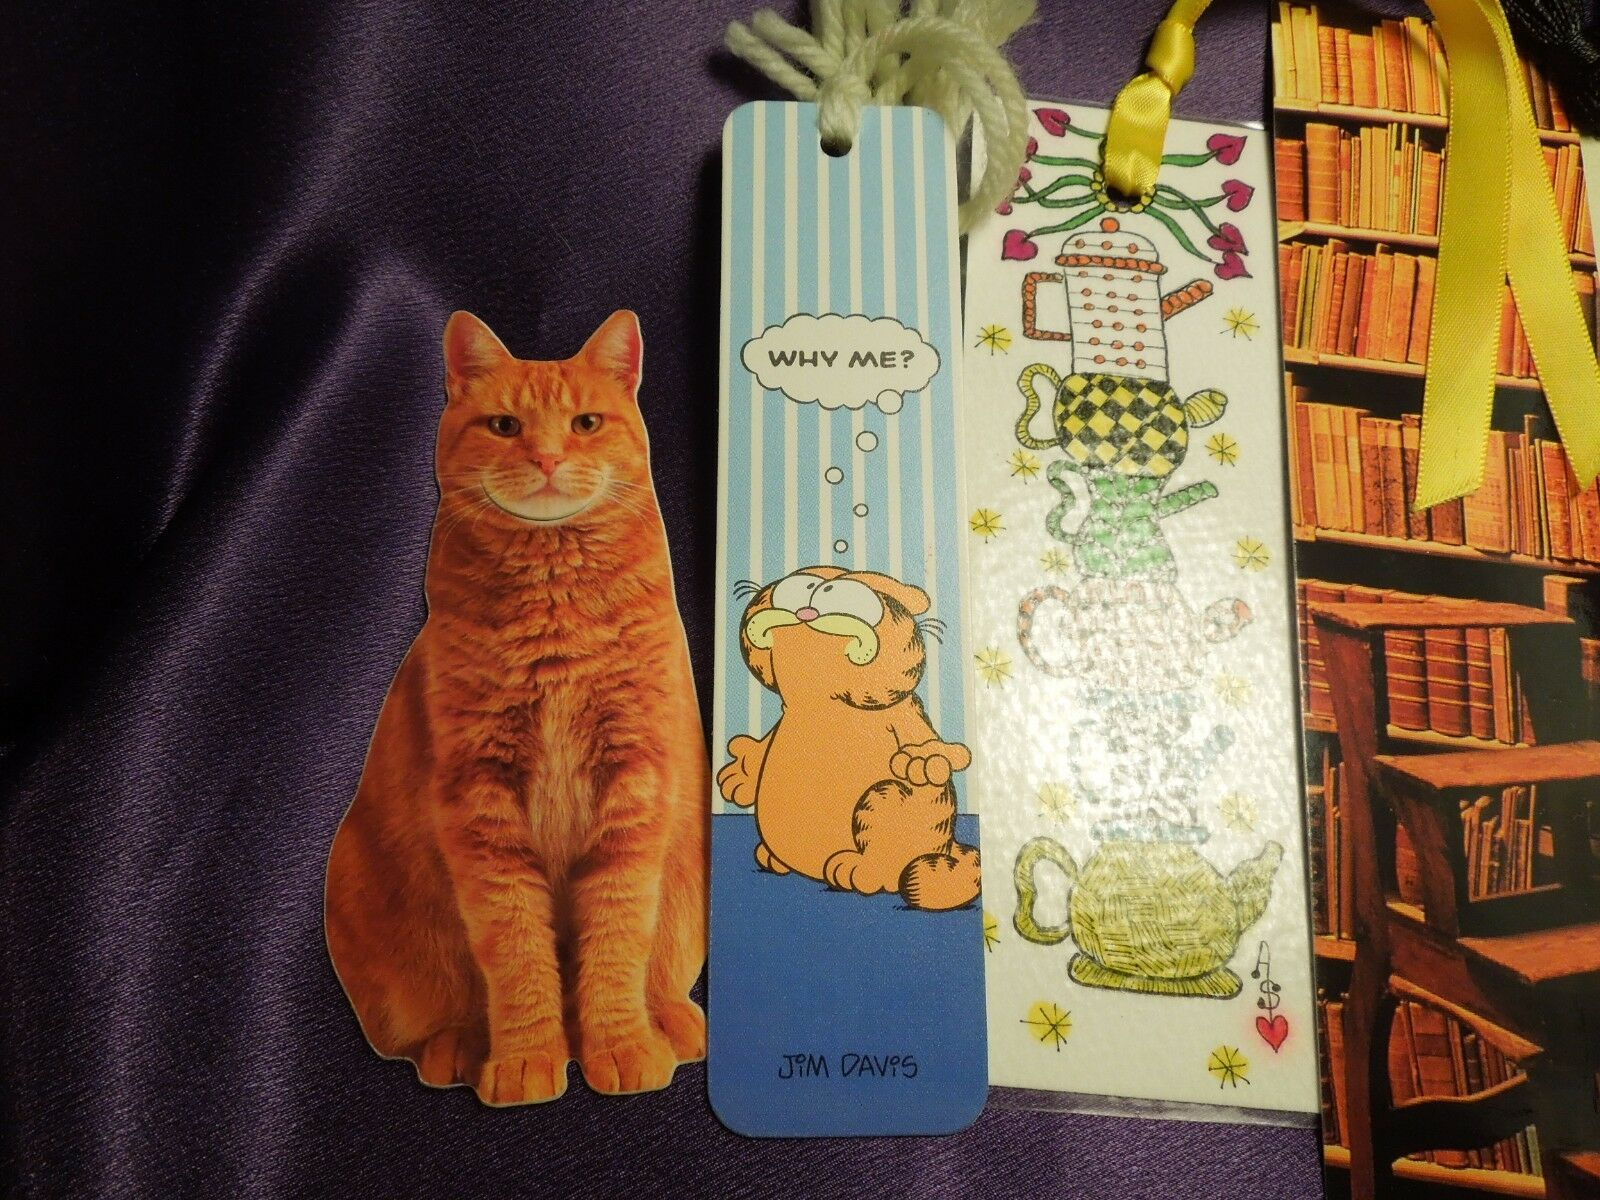 Lot of 7 Bookmarks Souvenir Istanbul Turkey Garfield Red Tabby Cat Handmade